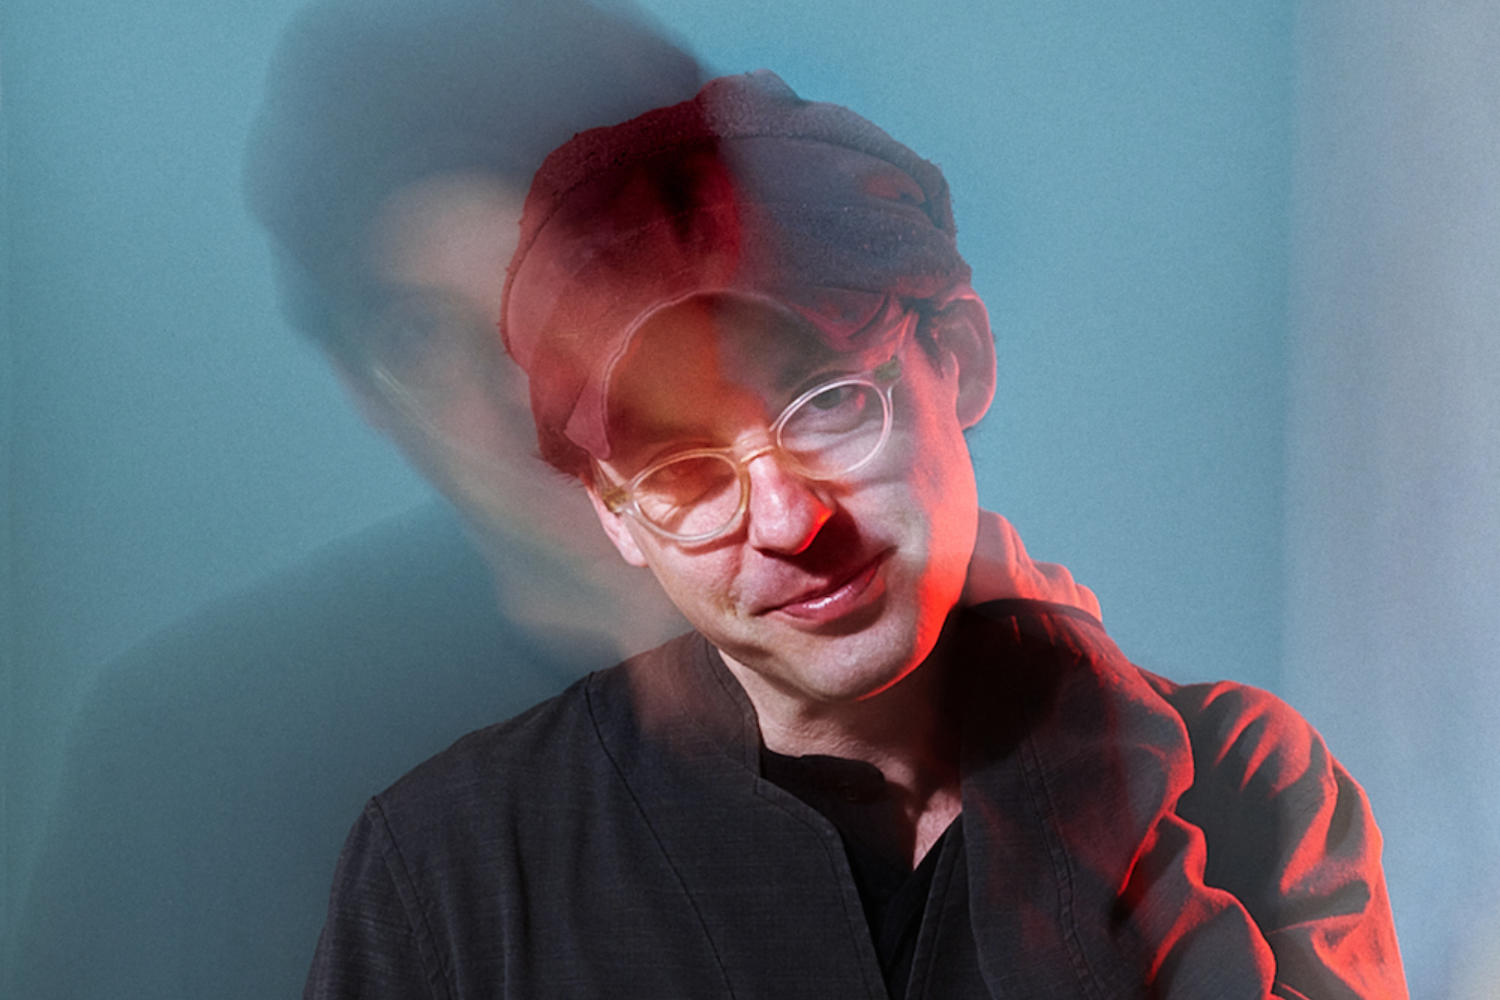 Clap Your Hands Say Yeah announce new album 'New Fragility'